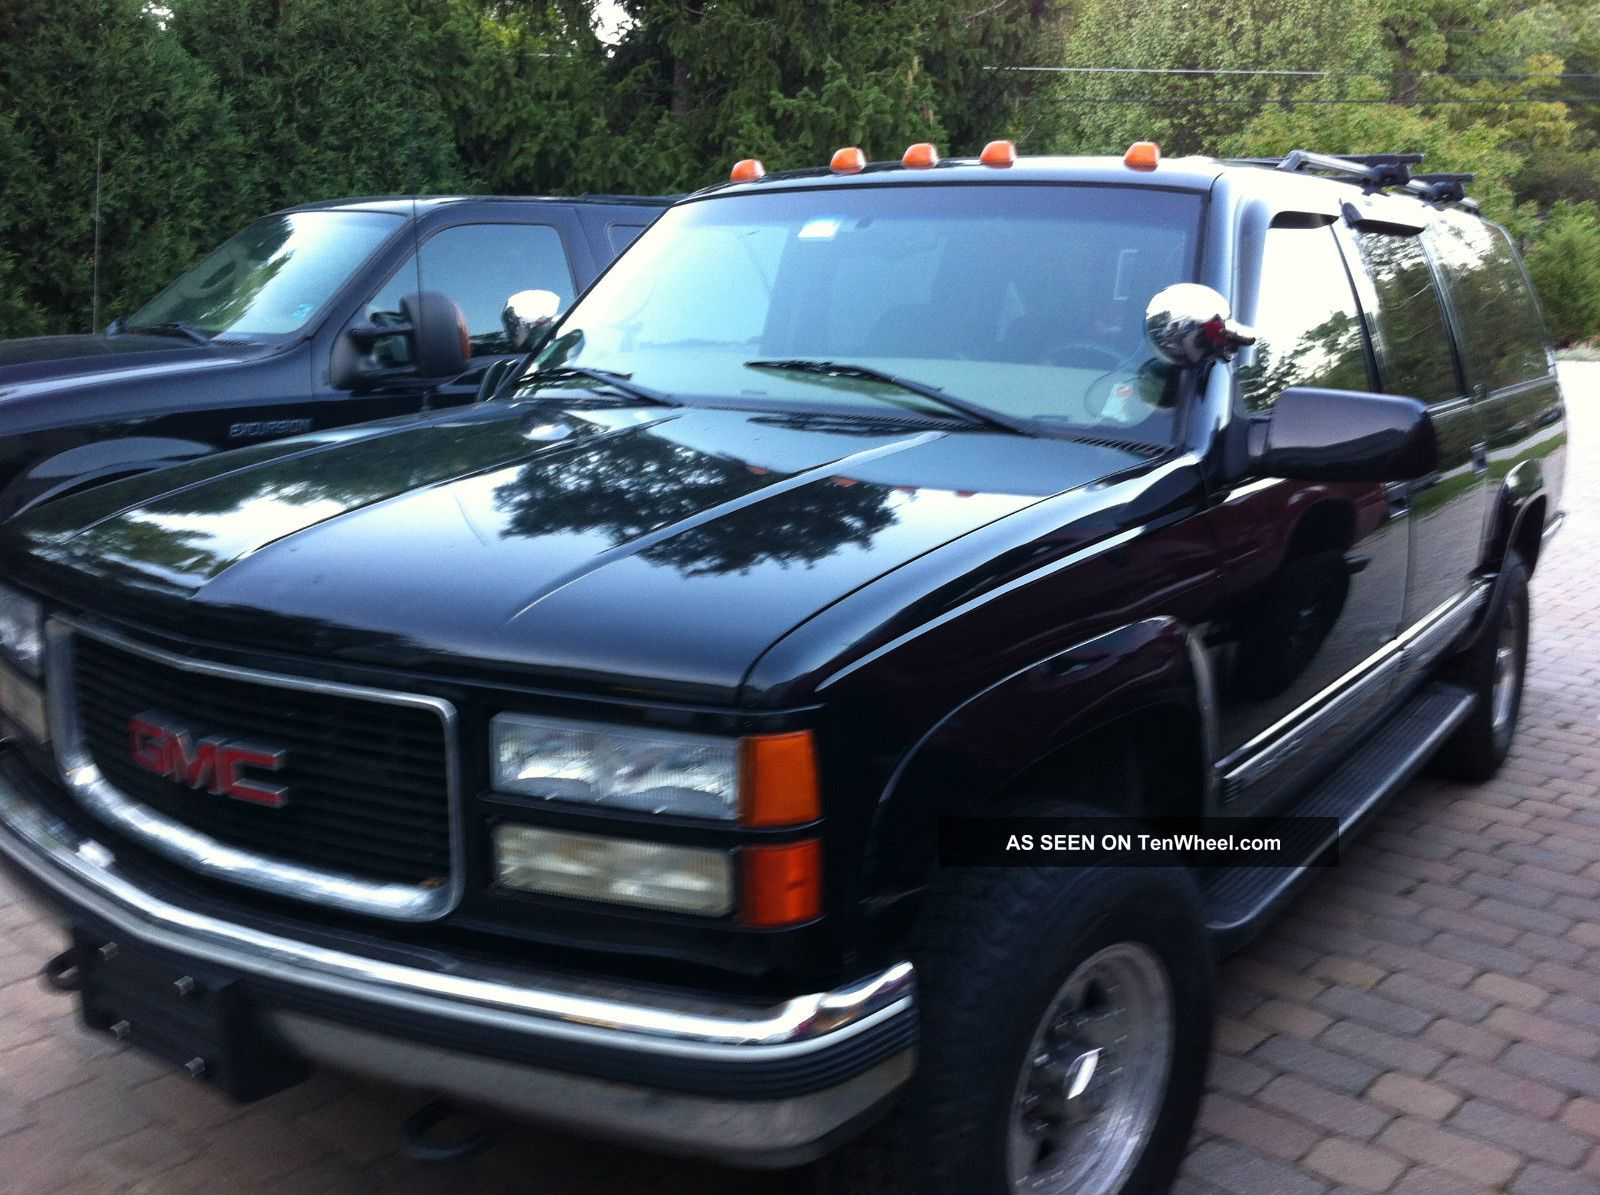 1999 gmc suburban black 2500 big block third row seating. Black Bedroom Furniture Sets. Home Design Ideas